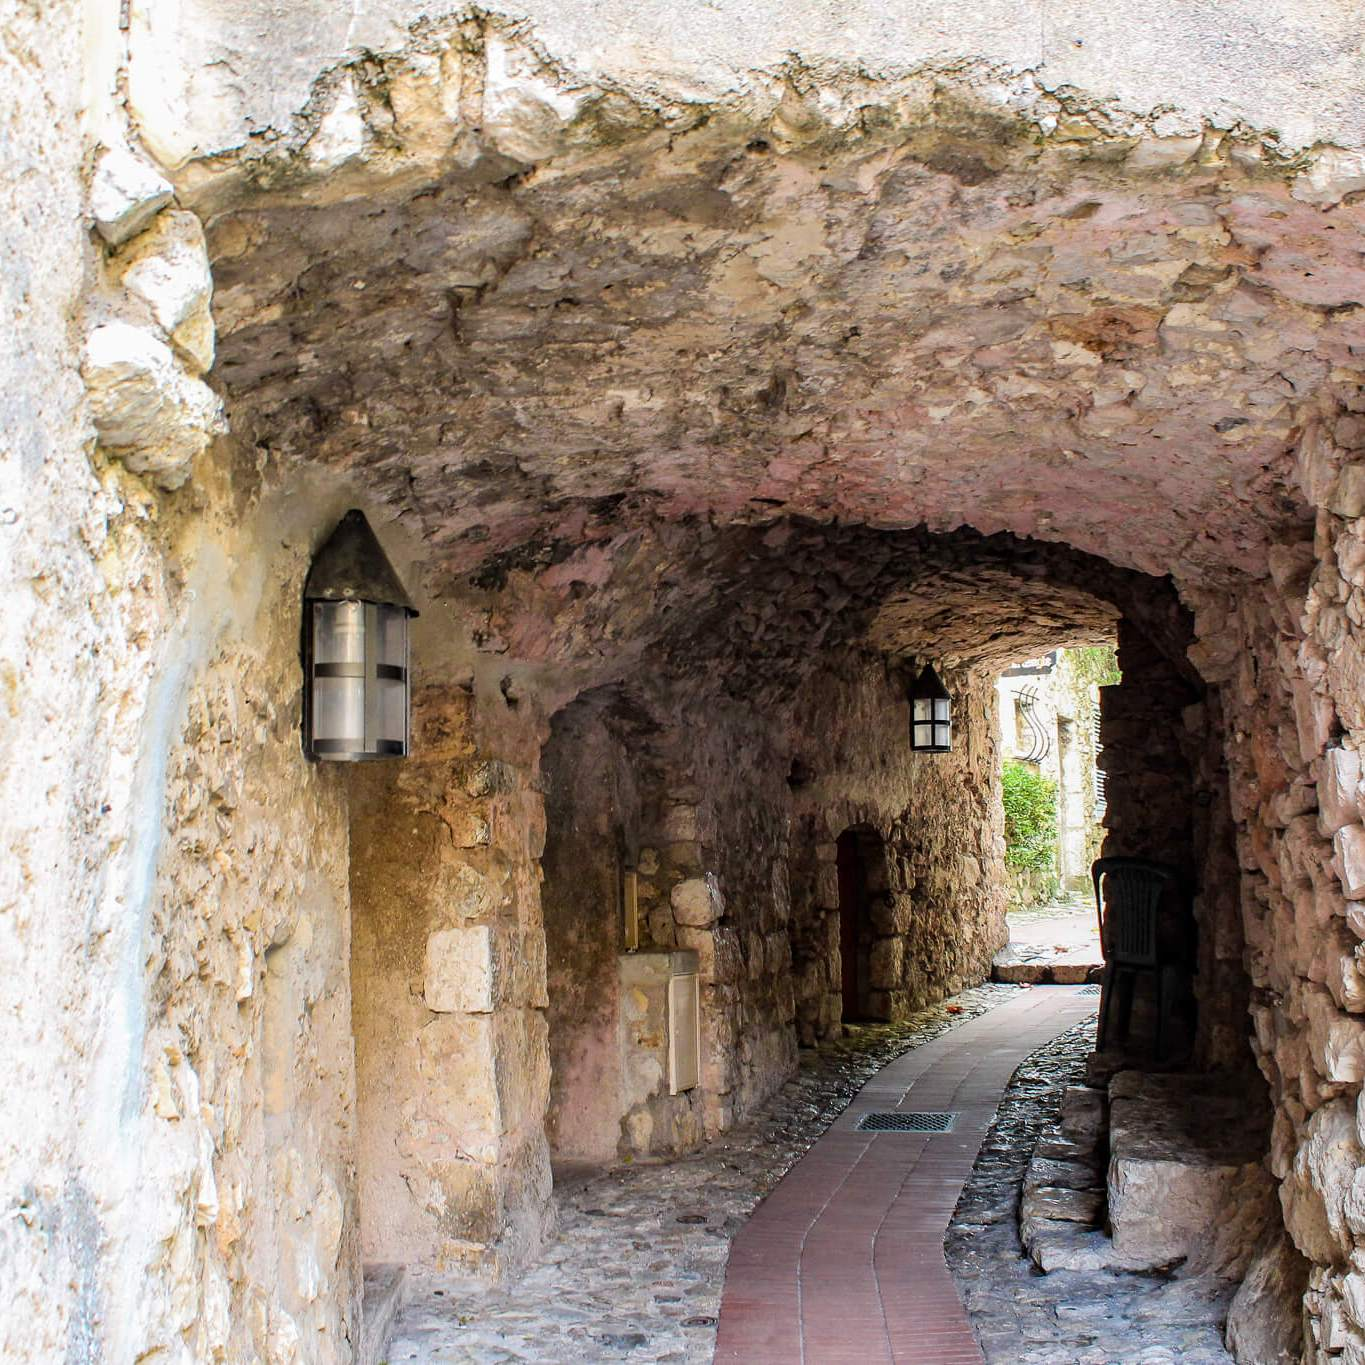 Archway in Eze, France